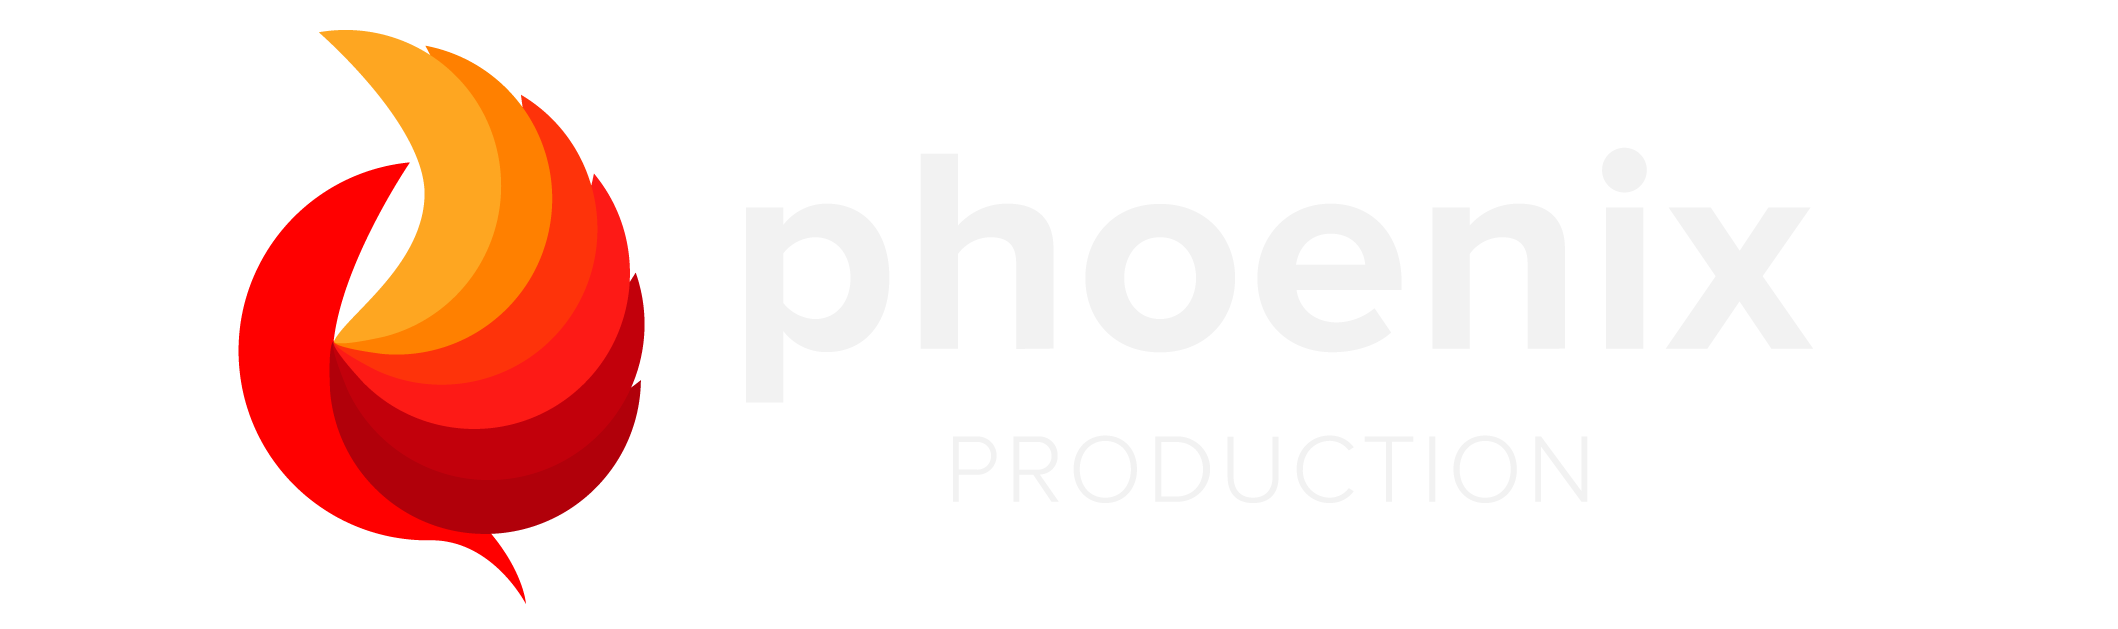 PhoenixProduction